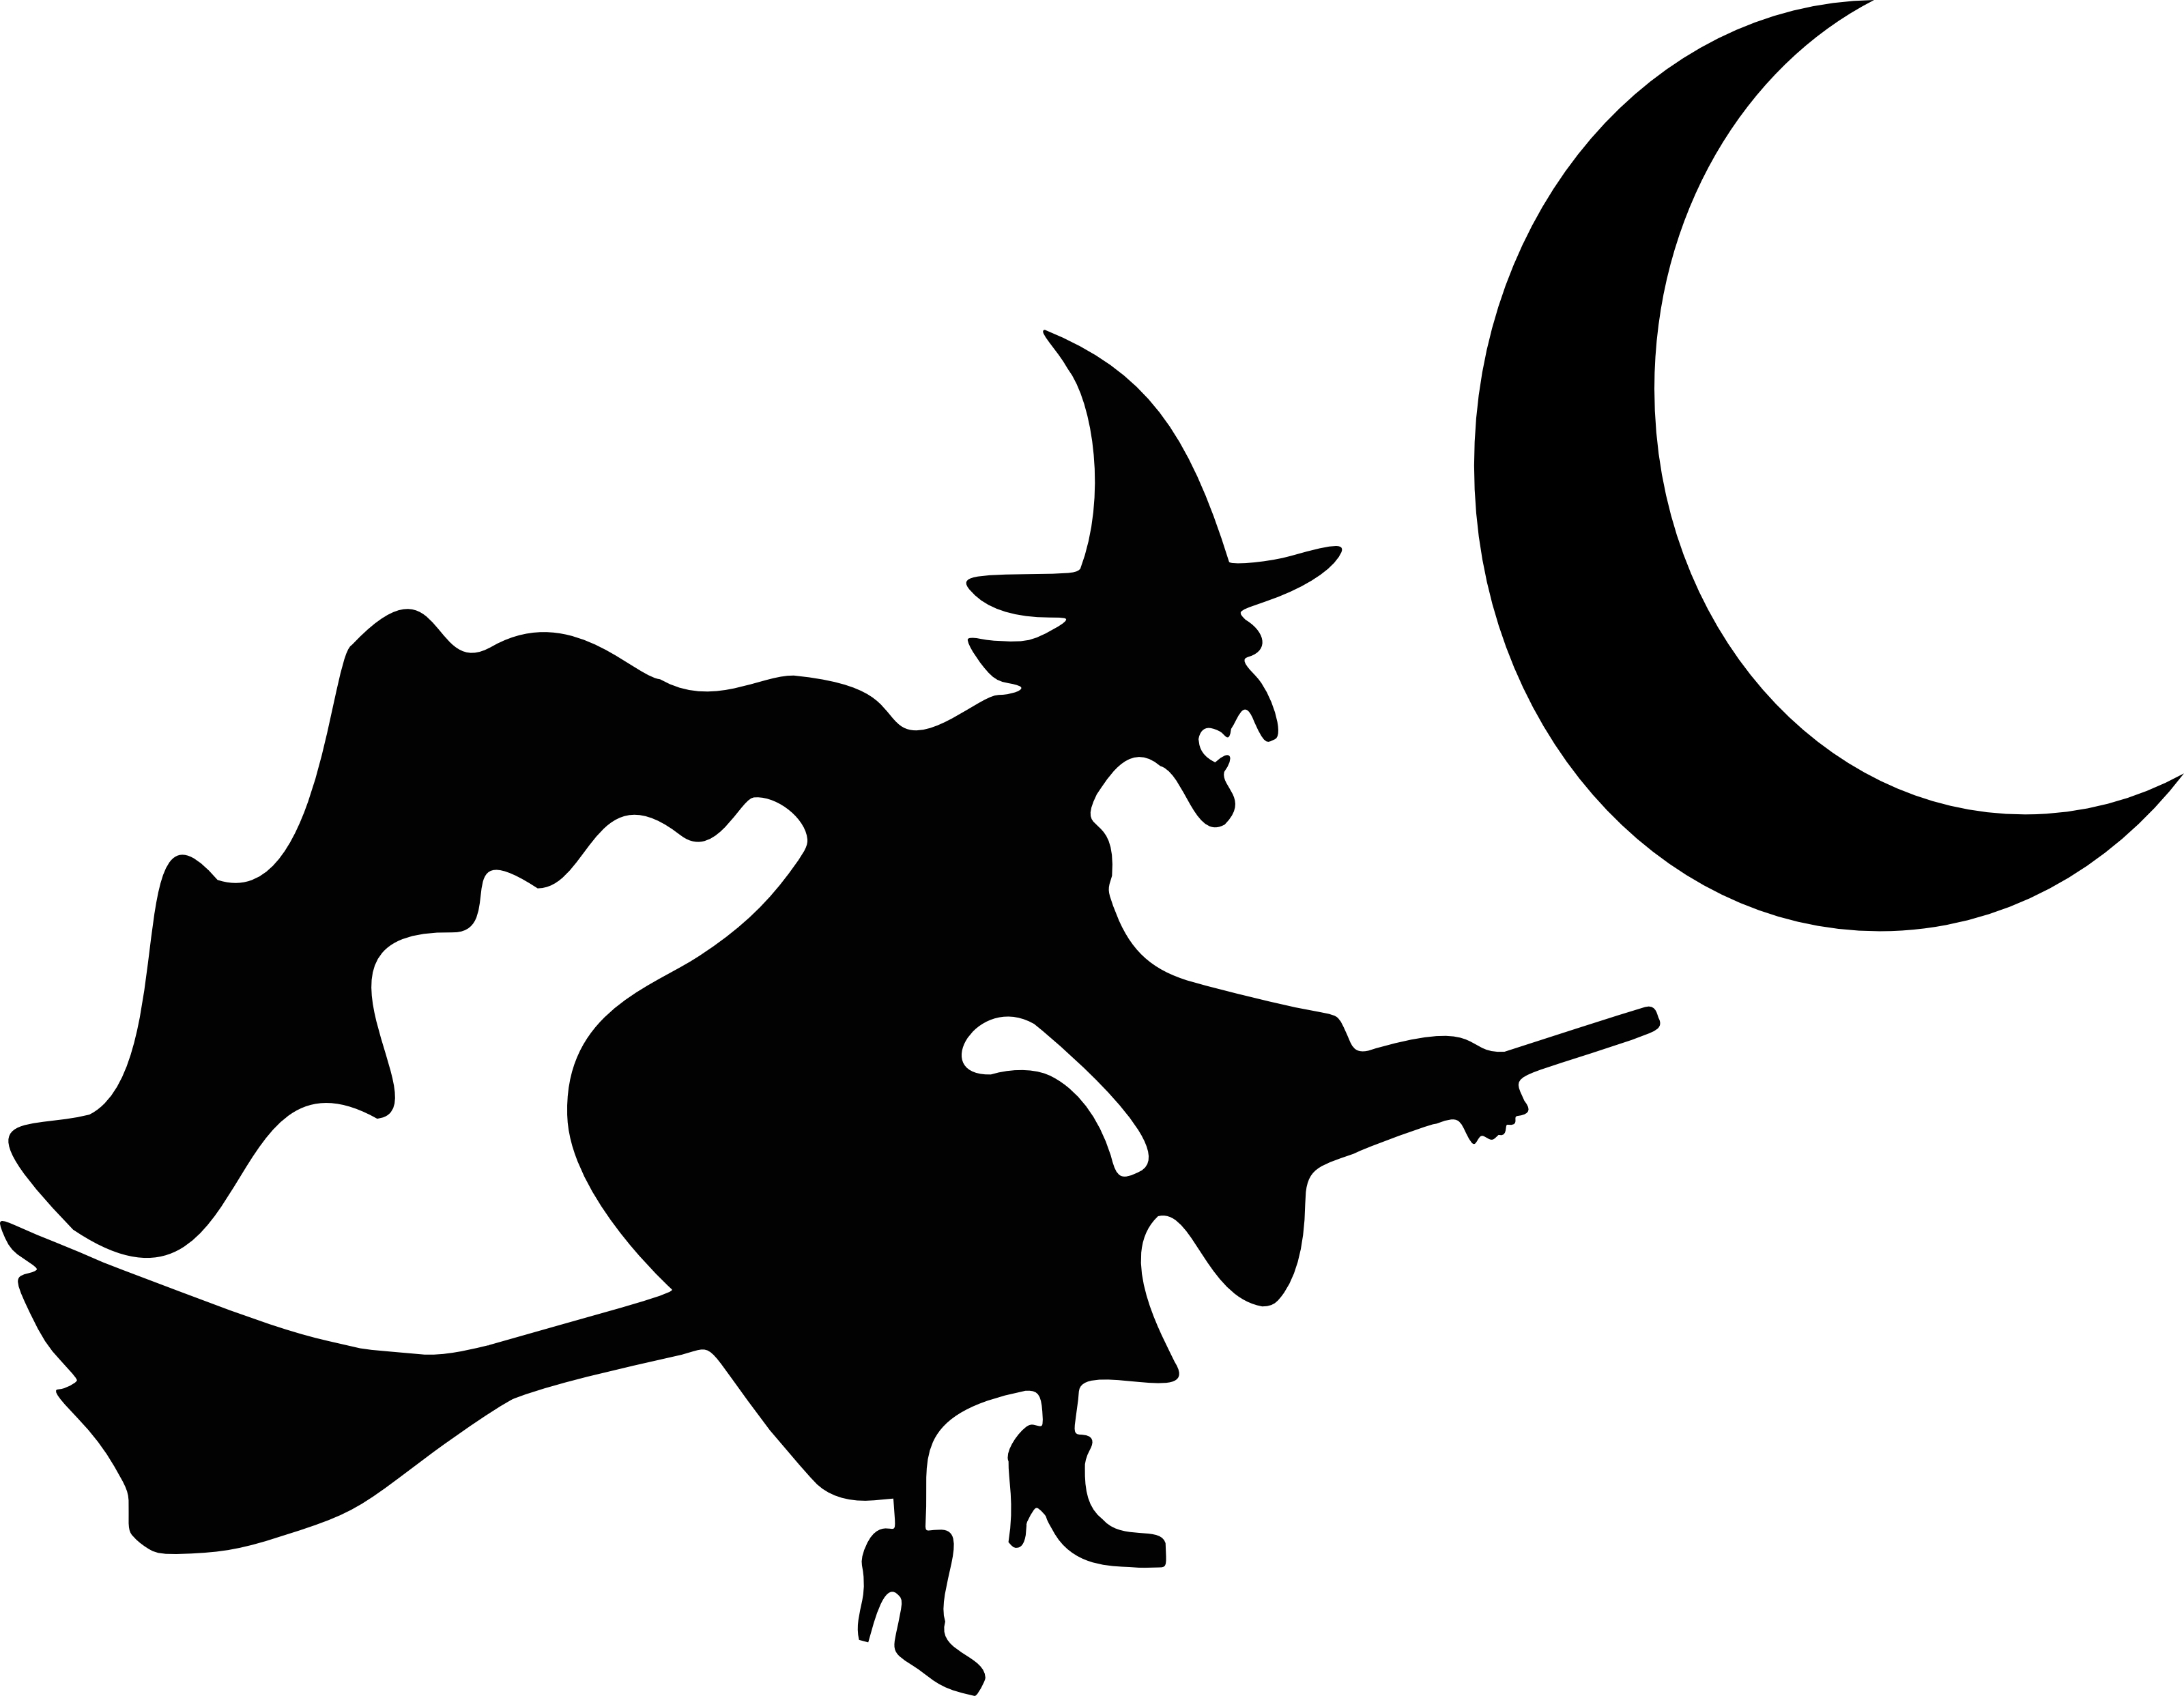 witch flying by crescent moon silhouette free halloween vector rh free clipartof com free halloween vector art free halloween vector art